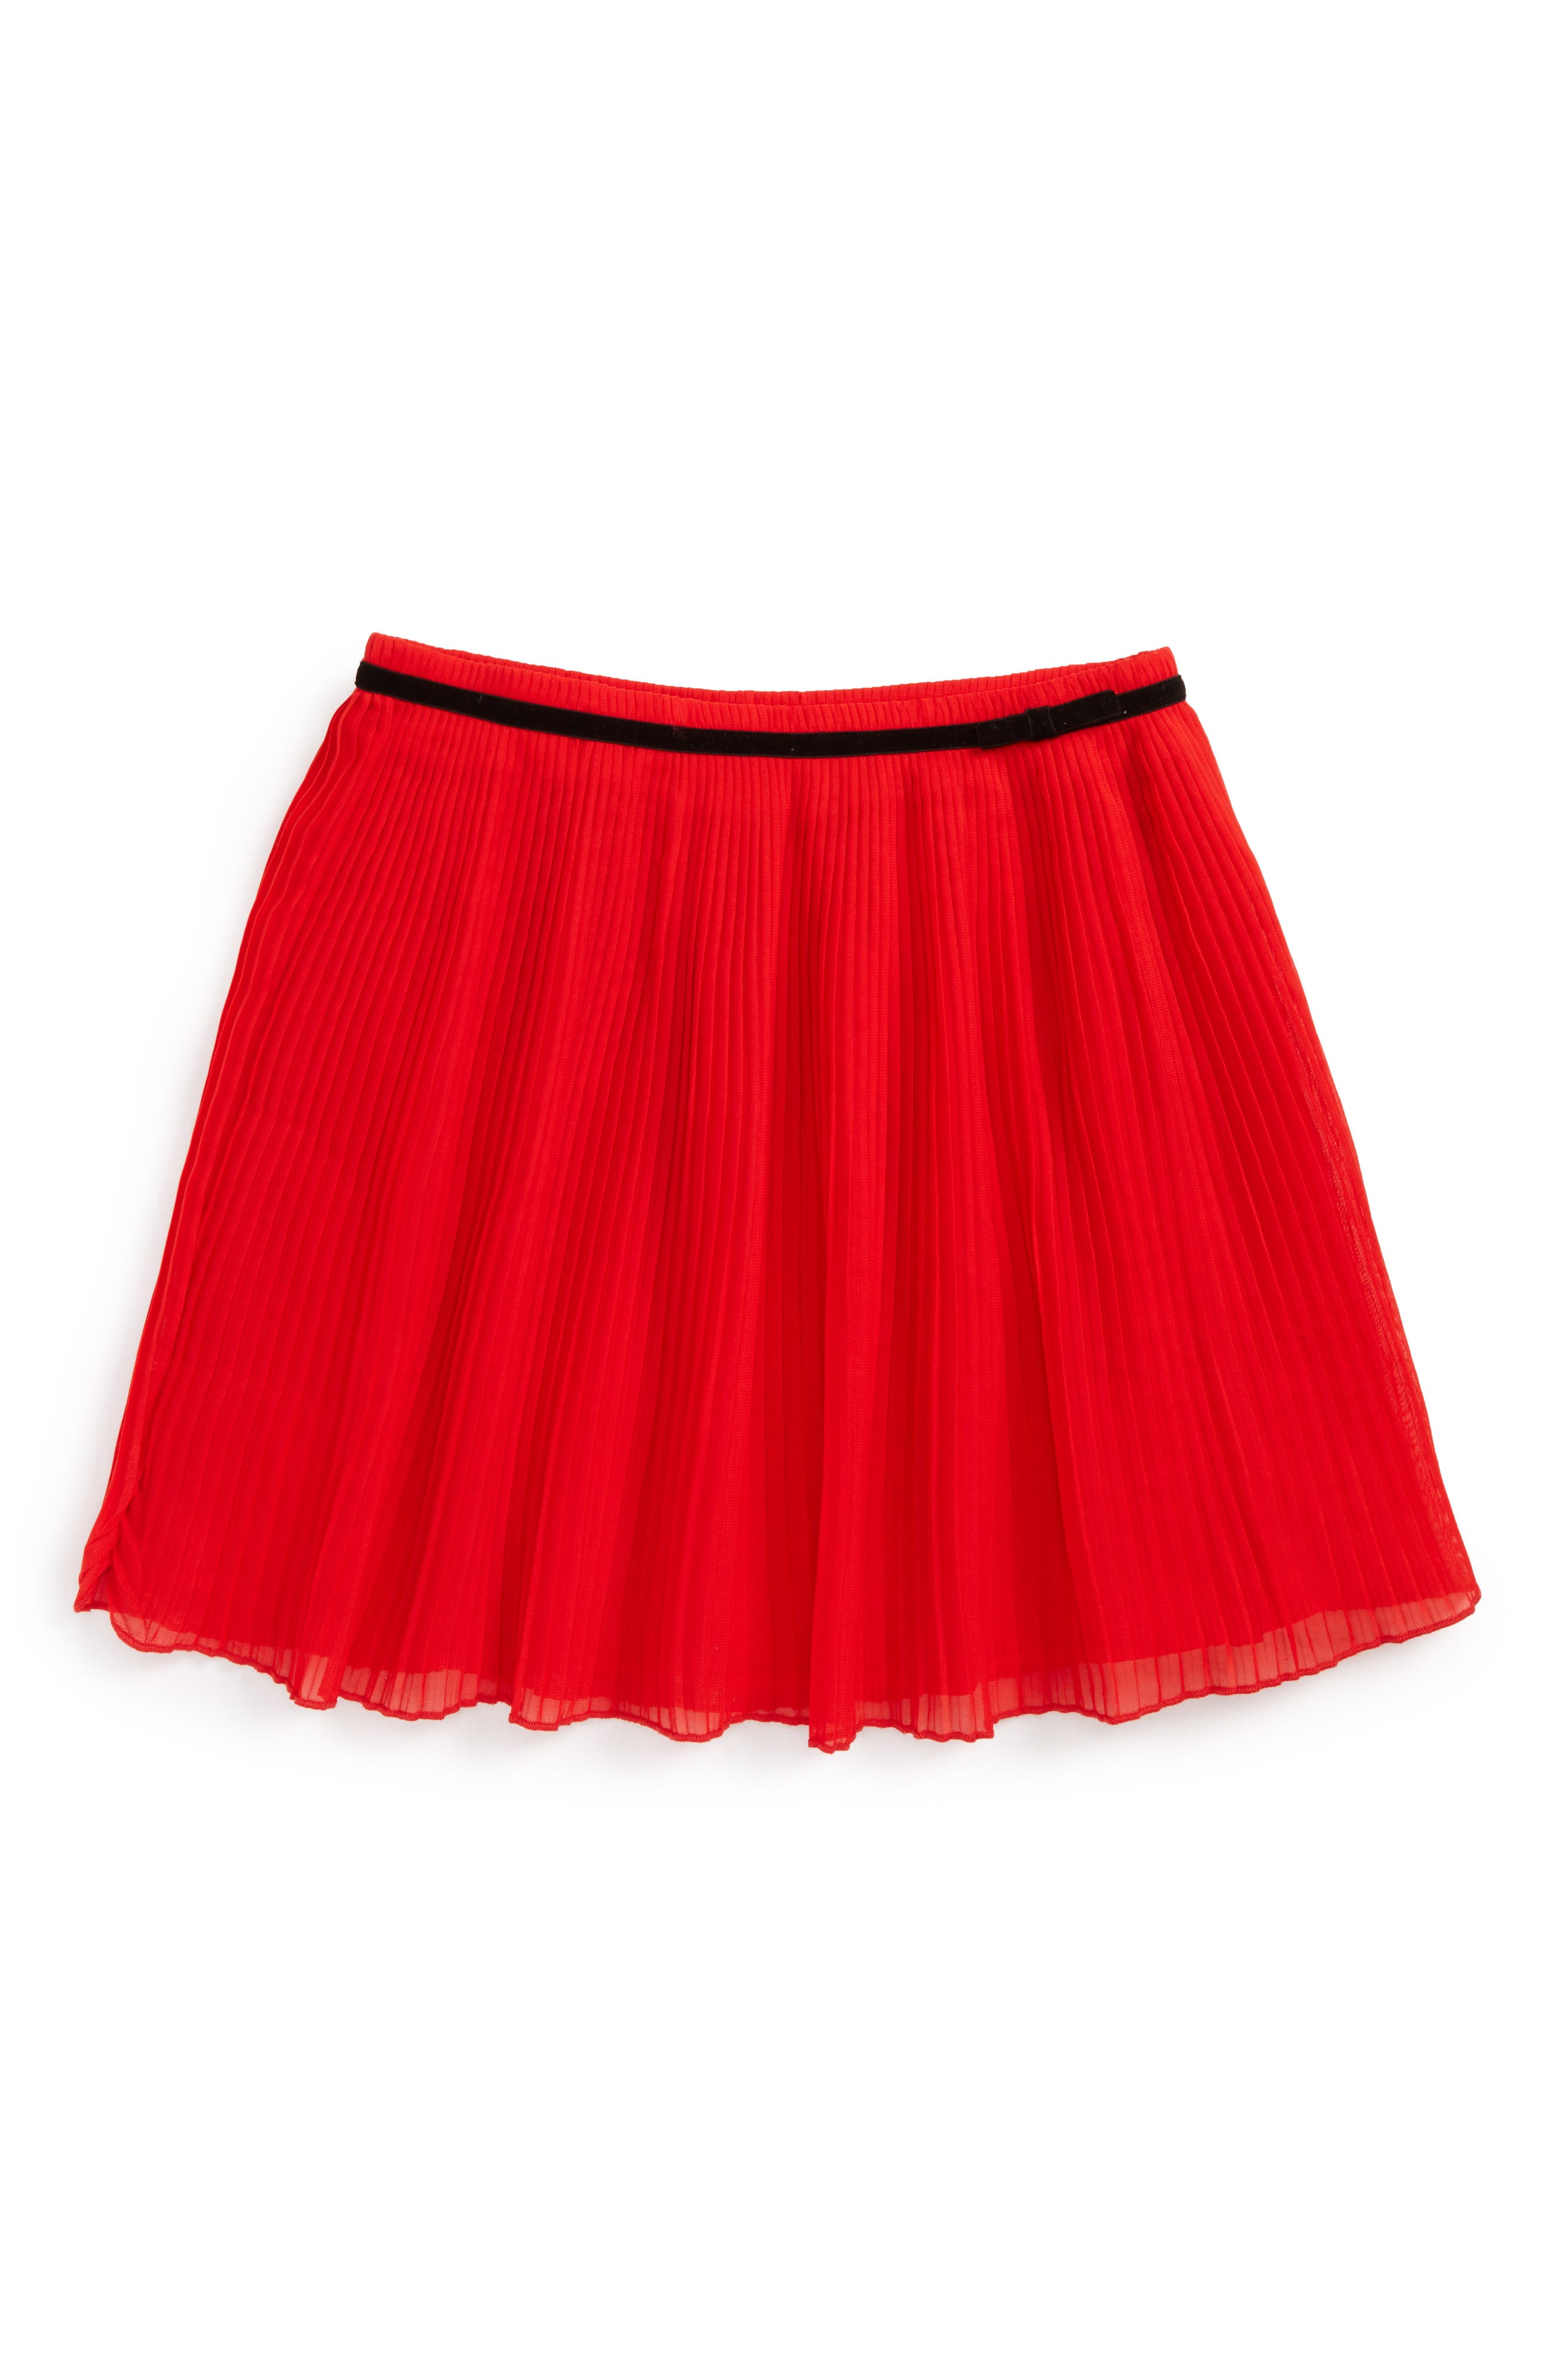 pleated chiffon skirt,                             Main thumbnail 1, color,                             Studio Red